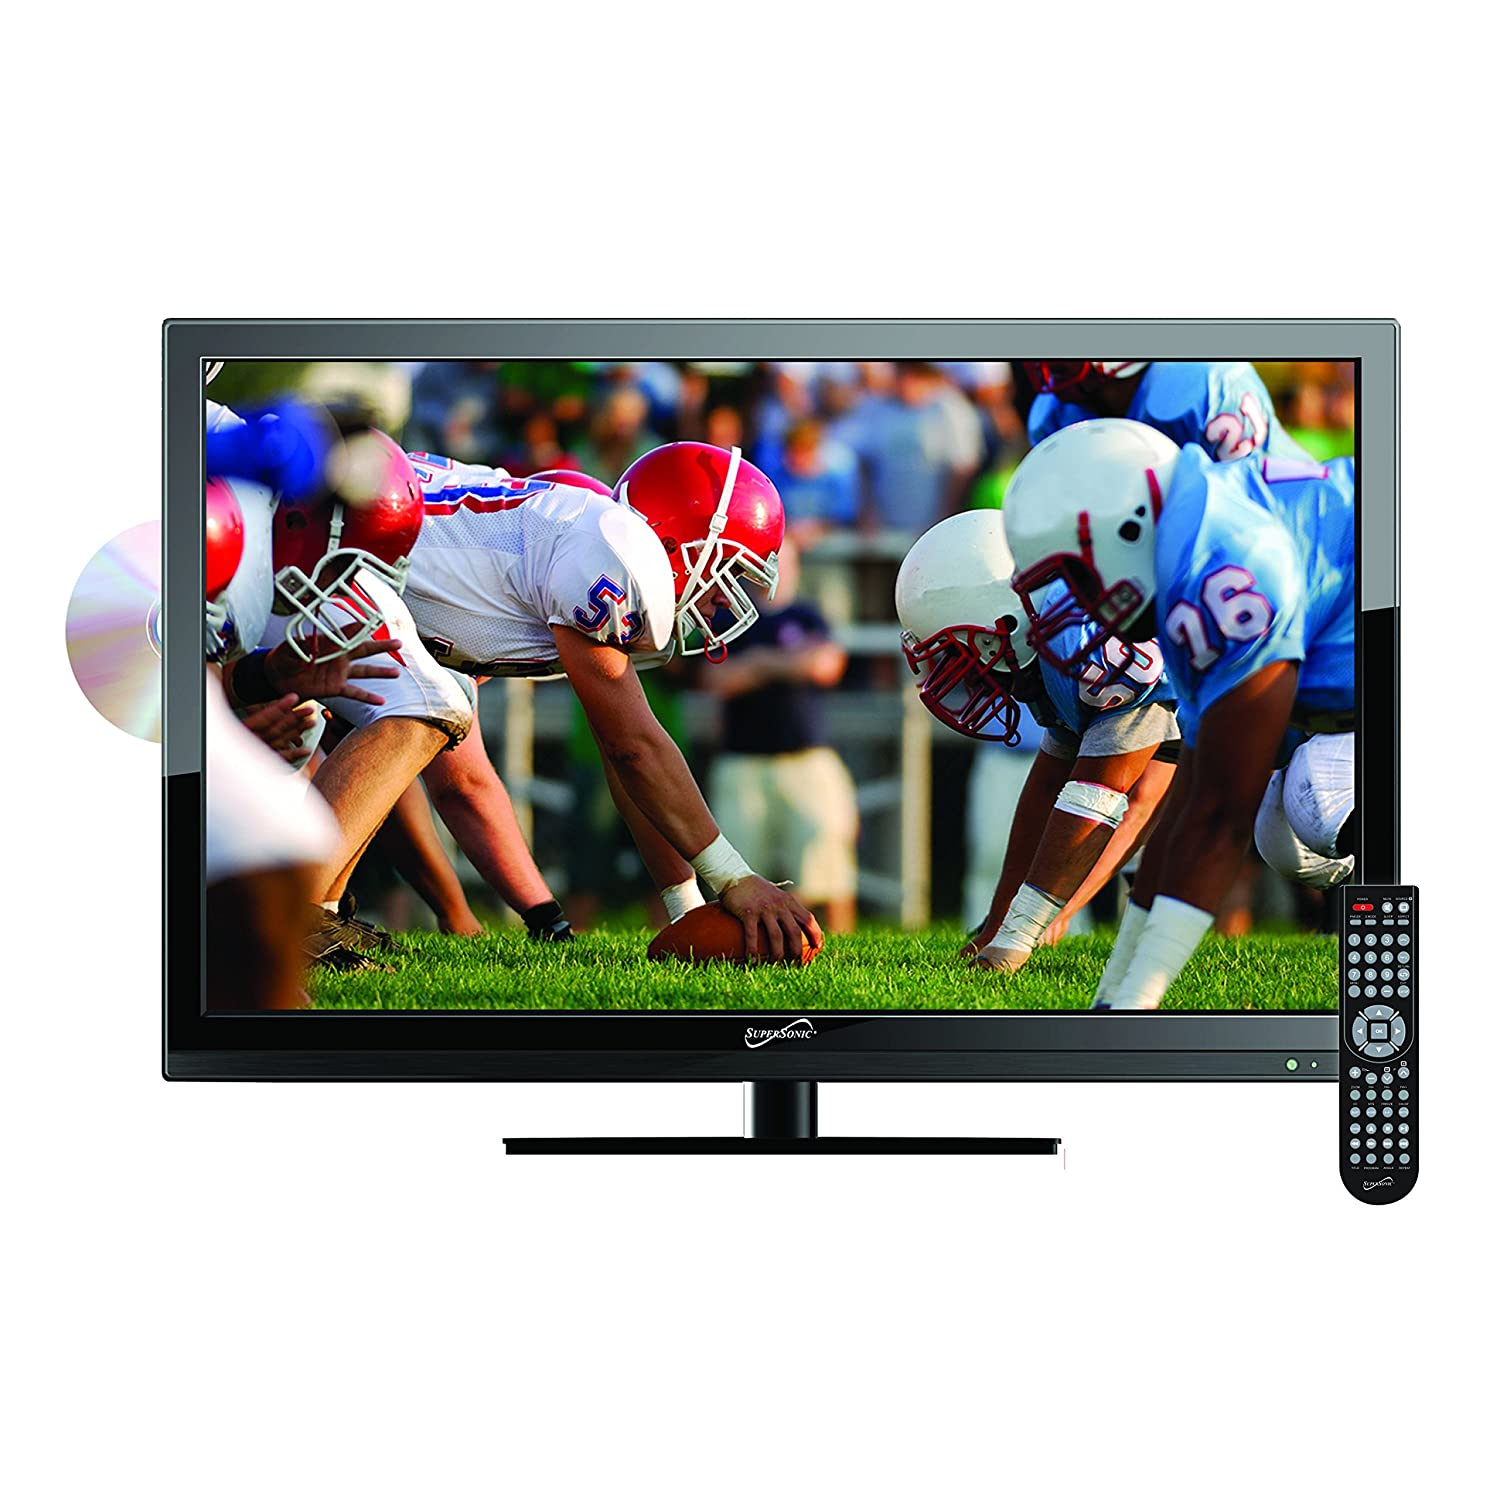 SuperSonic 19-Inch 1080p LED Widescreen HDTV HDMI with Built-in DVD Player, AC/DC